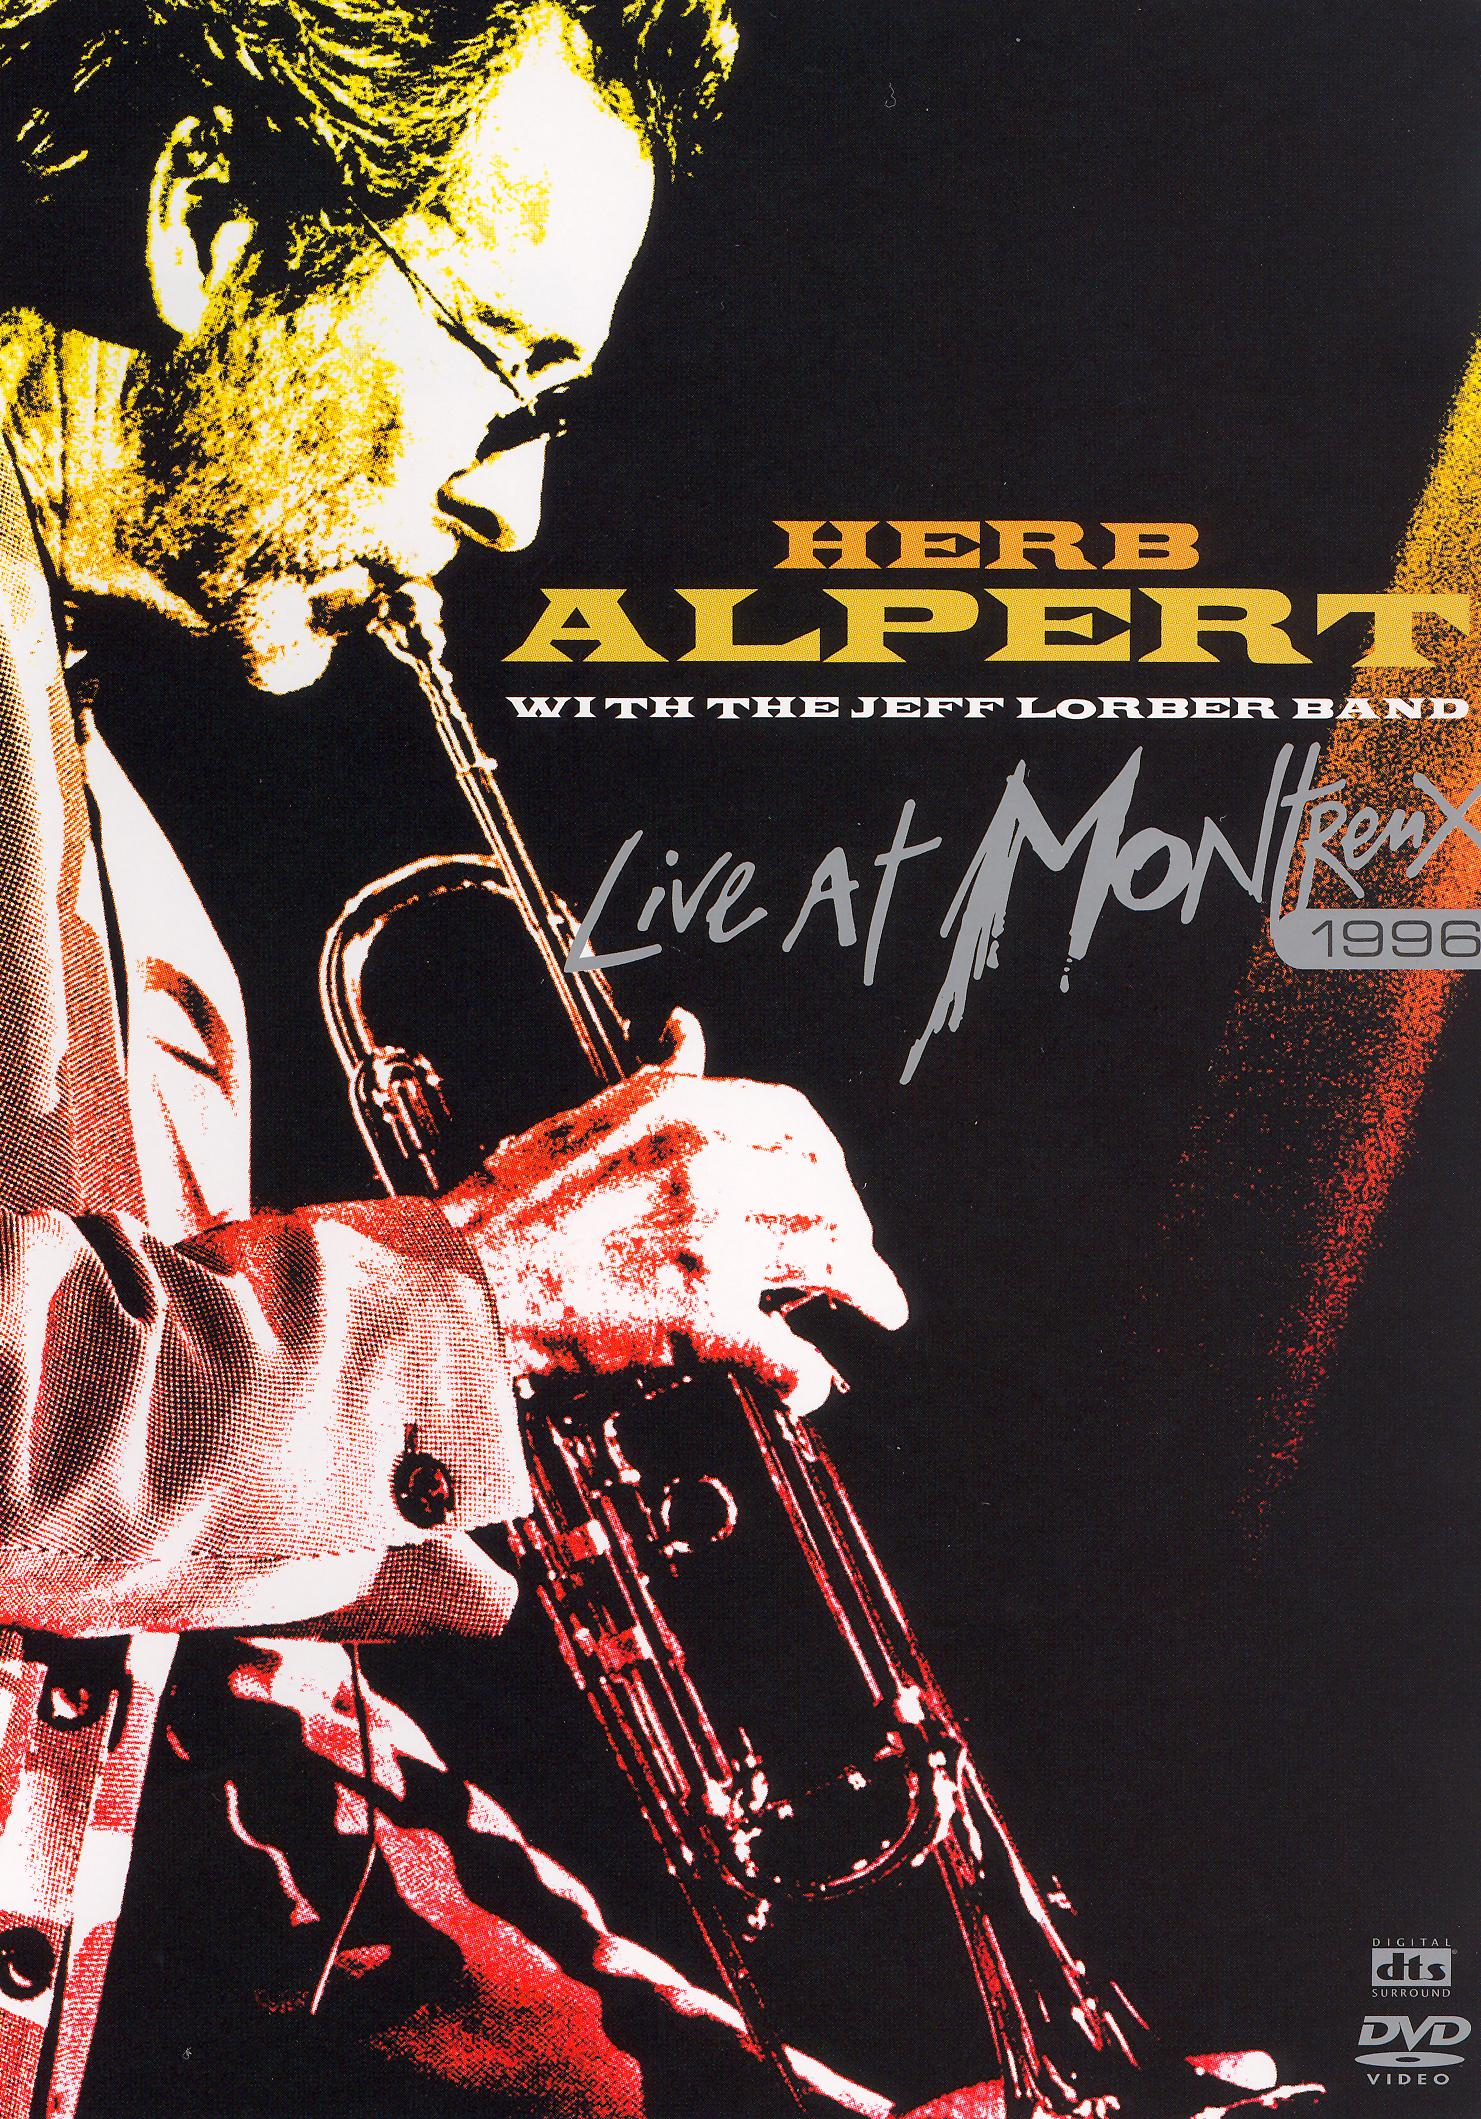 Herb Alpert with the Jeff Lorber Band: Live at Montreux 1996